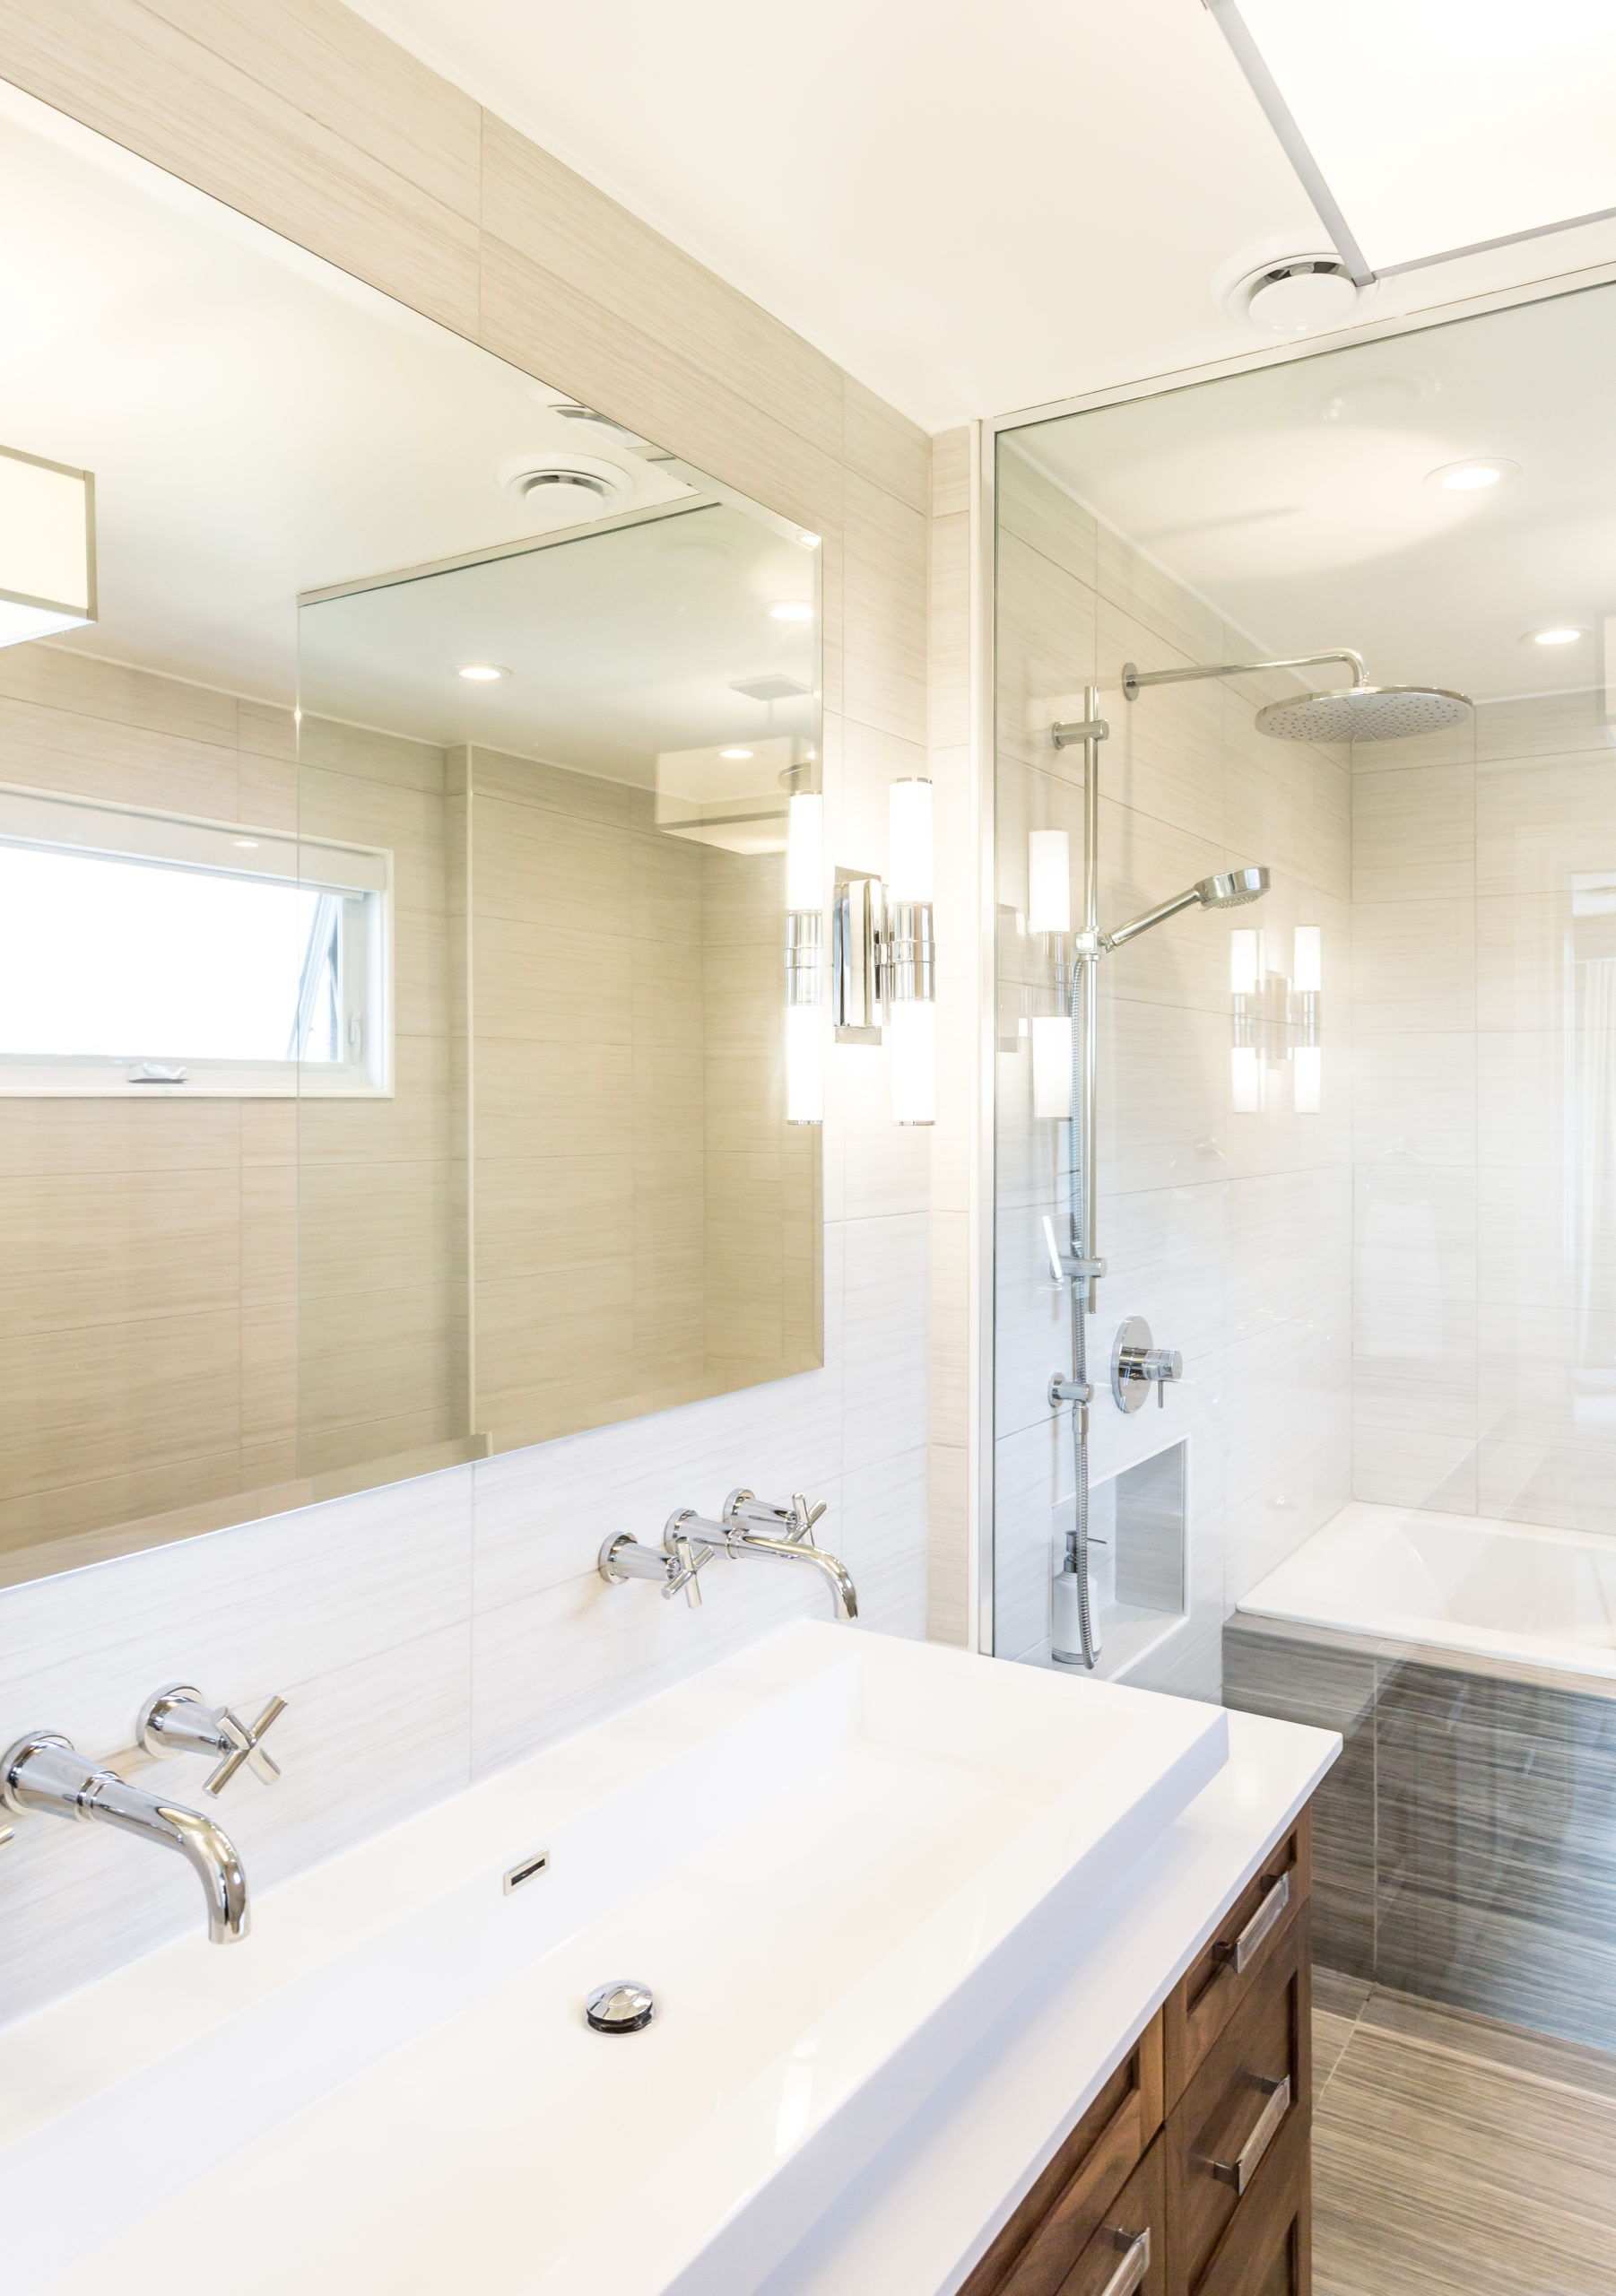 Bright, clean bathroom with a two faucet sink